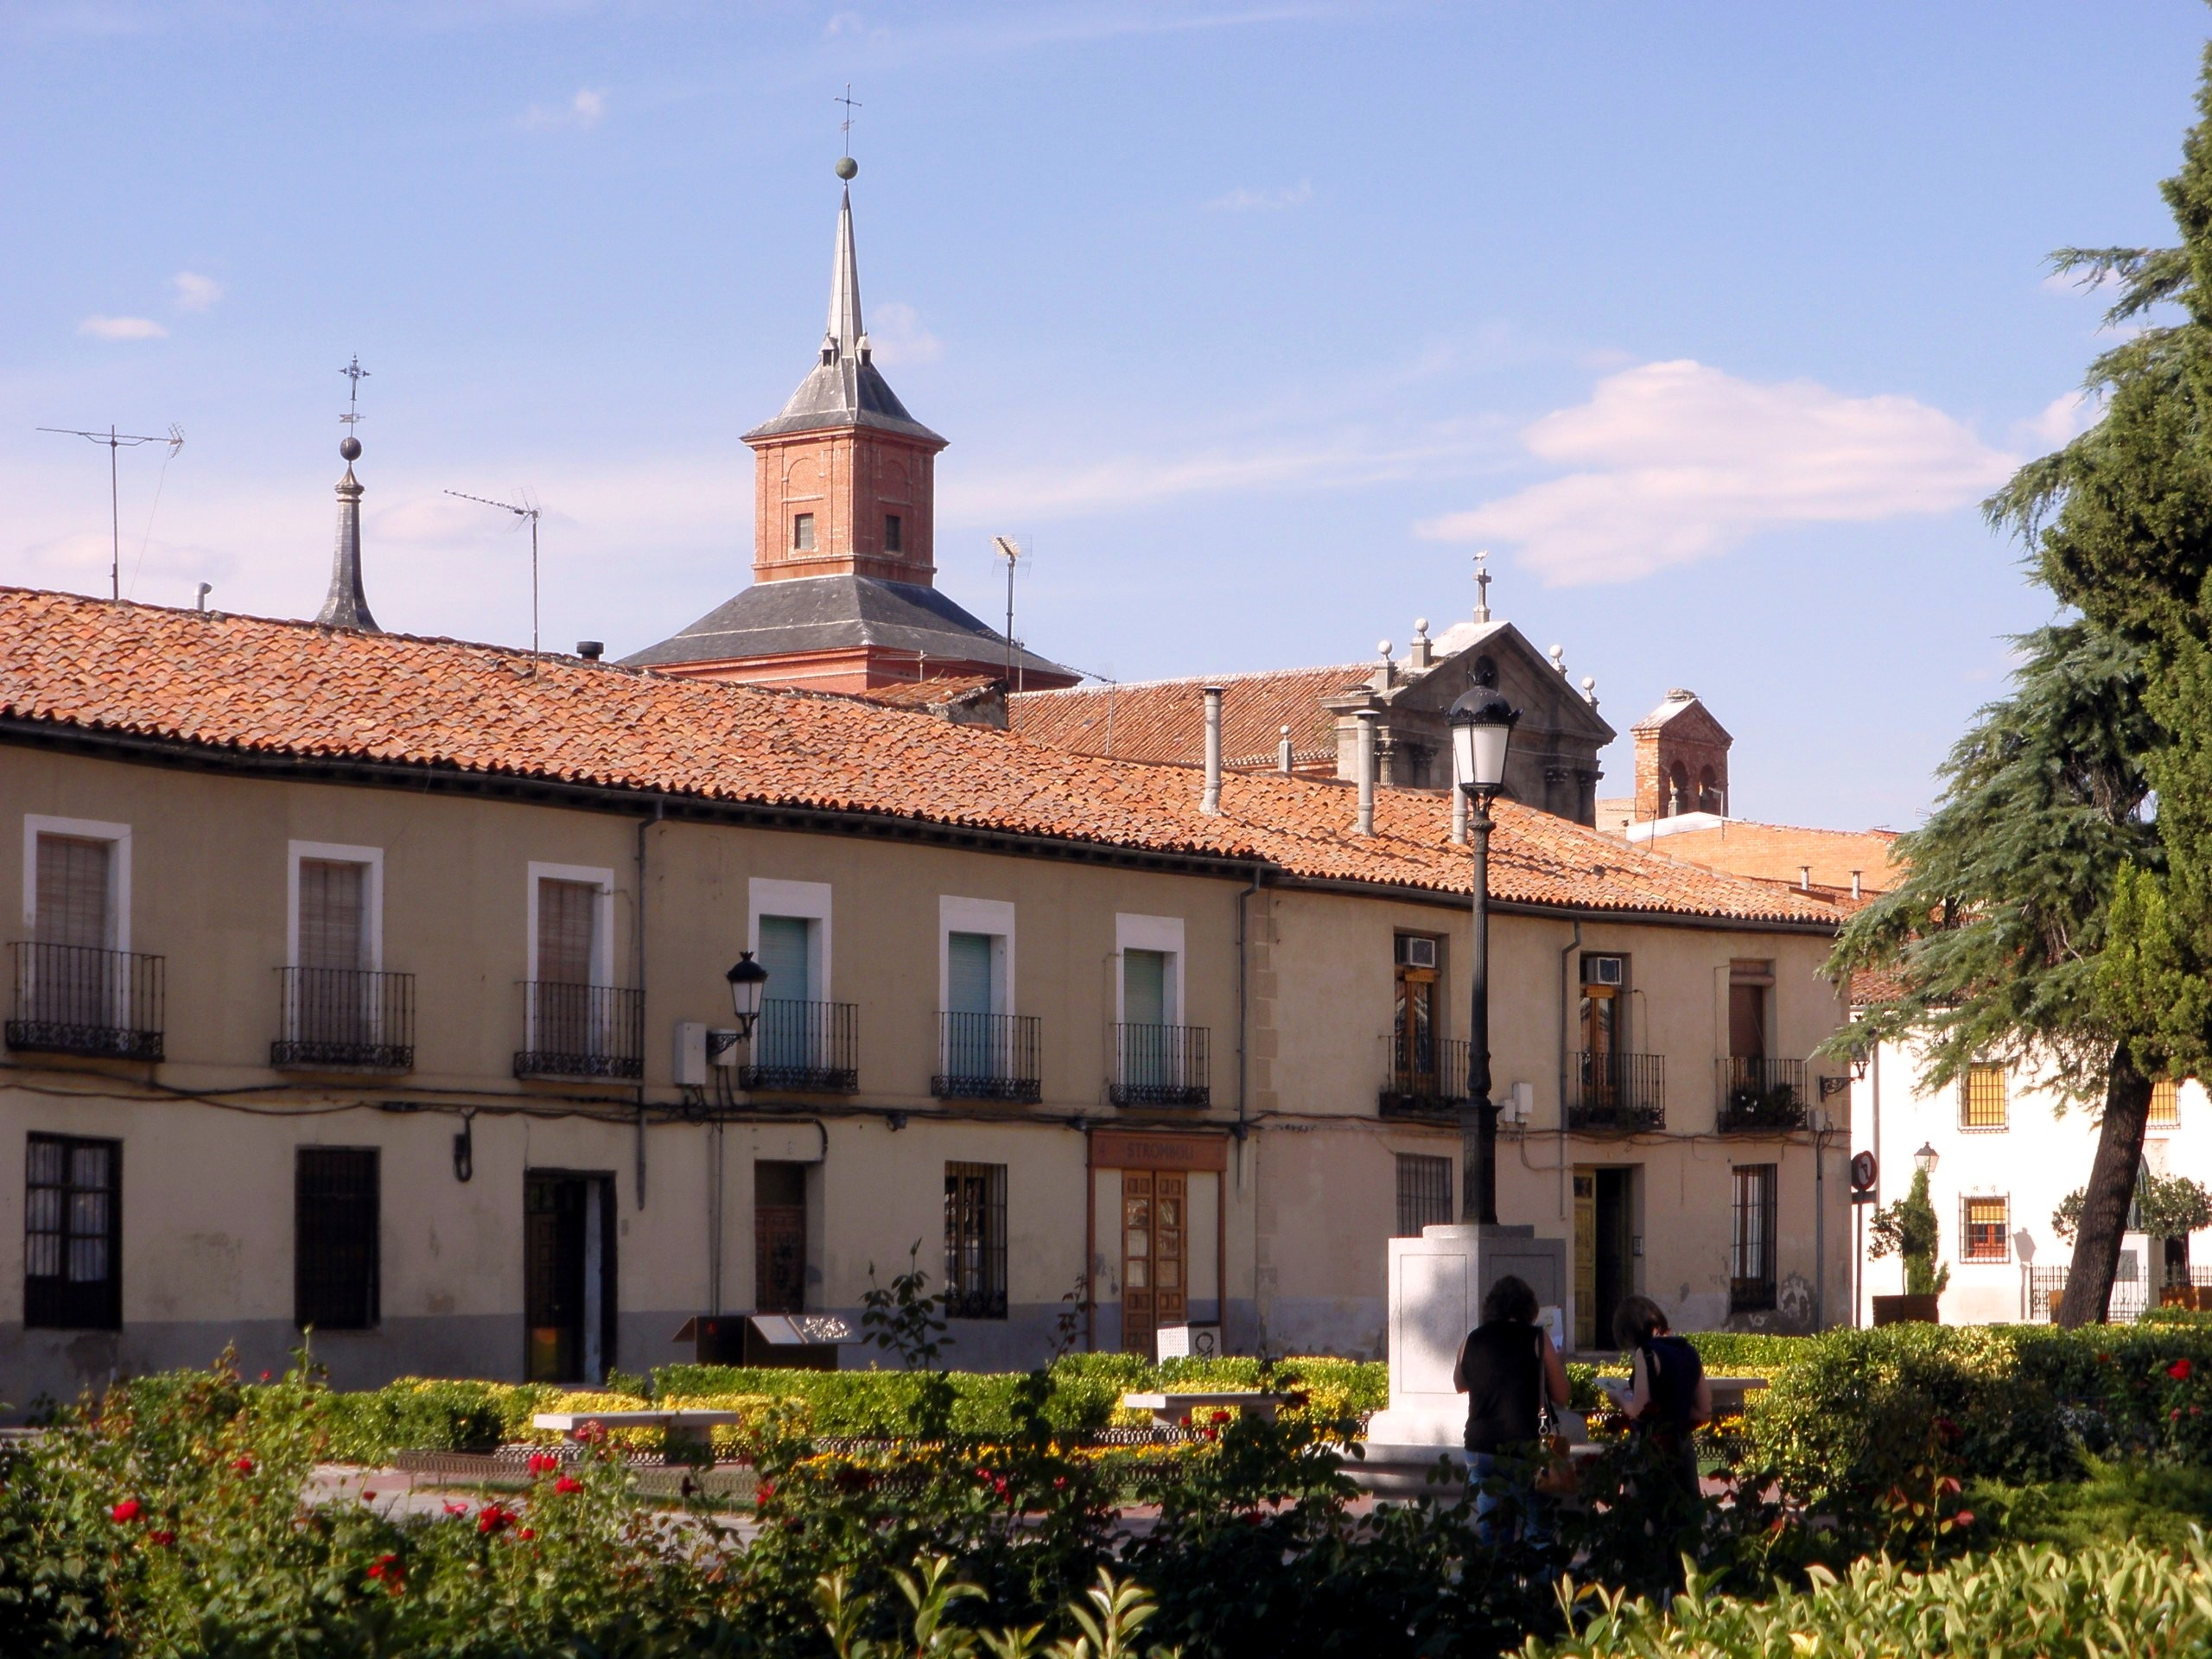 Alcala de henares spain pictures and videos and news - Pintores alcala de henares ...